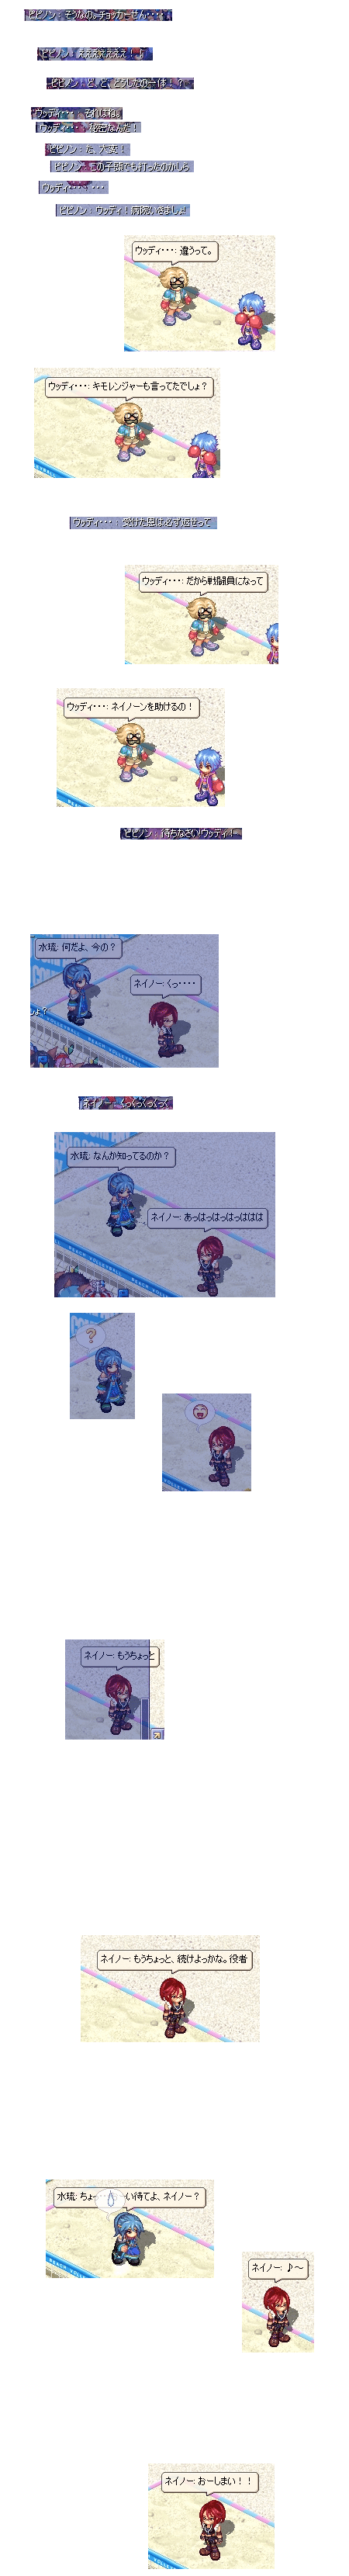 2007062525.png